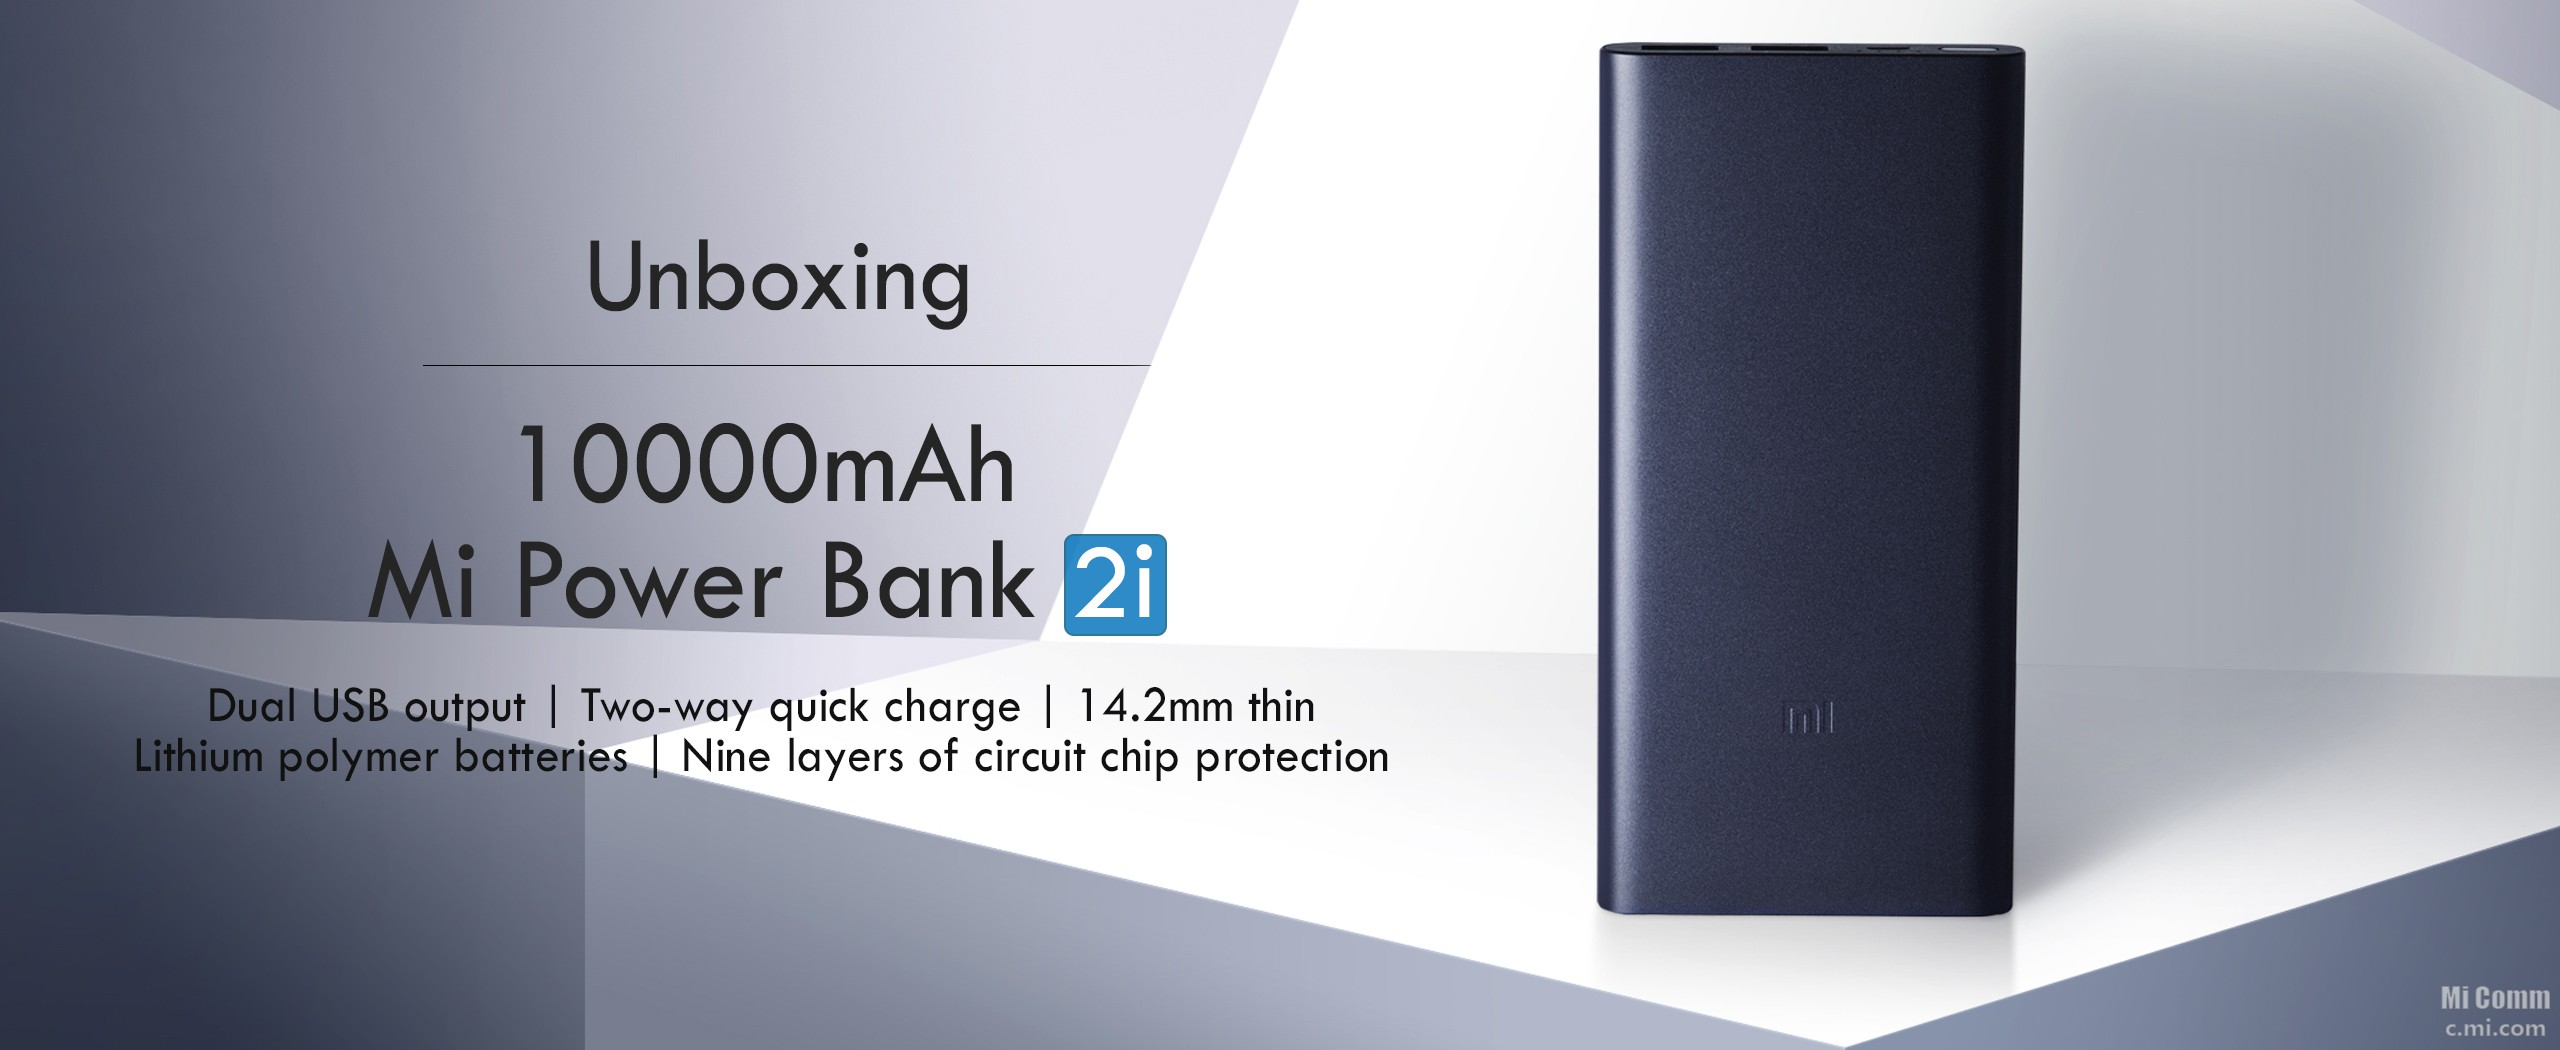 Xiaomi mi portable powerbank 2c v2 quick charge qc 3 0 Power bank mah